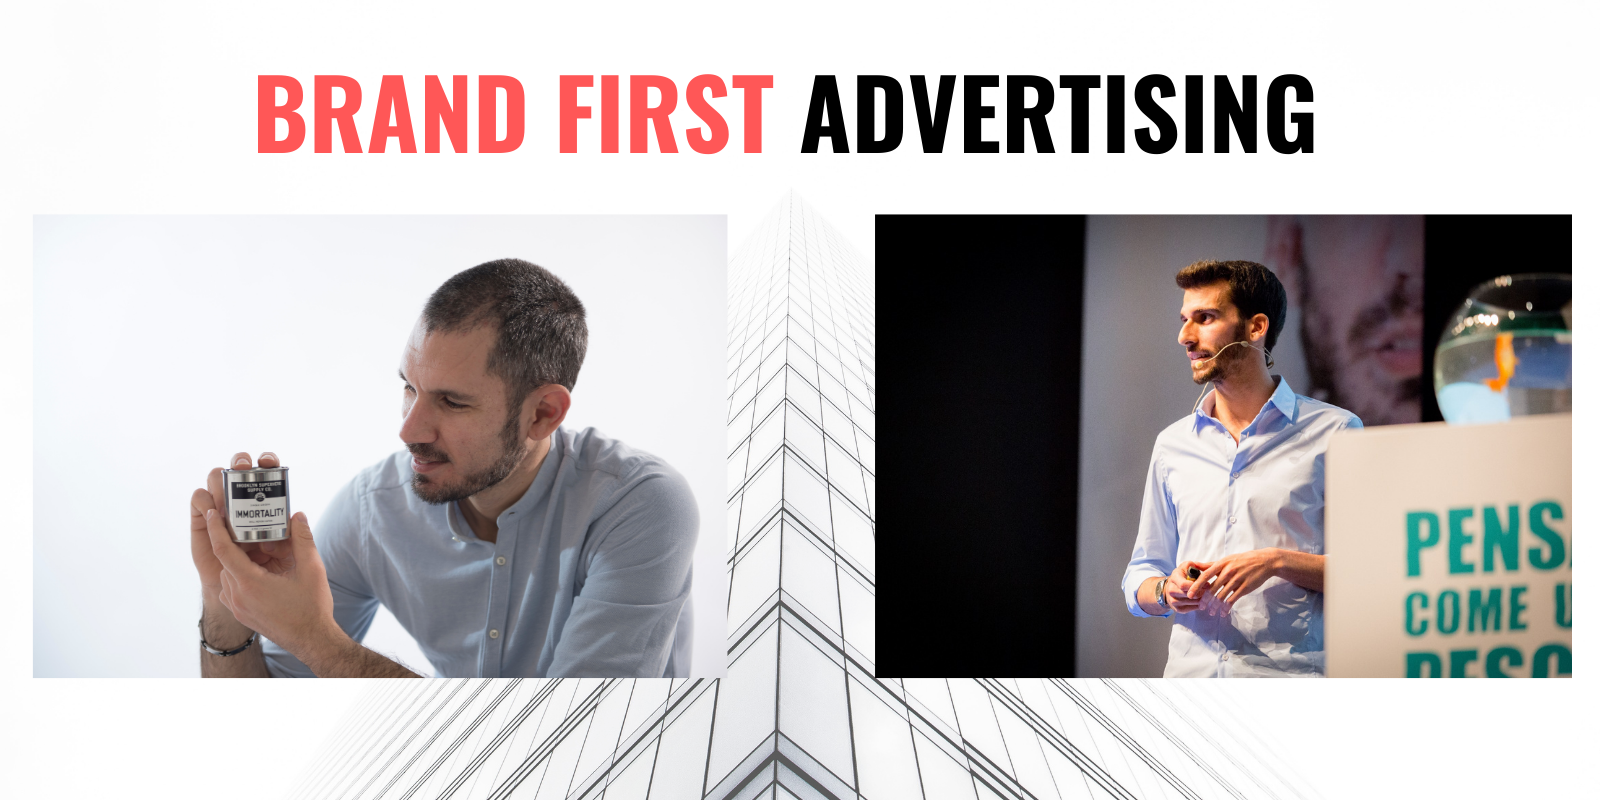 Brand First Advertising - L'arte di comunicare il Brand su Facebook